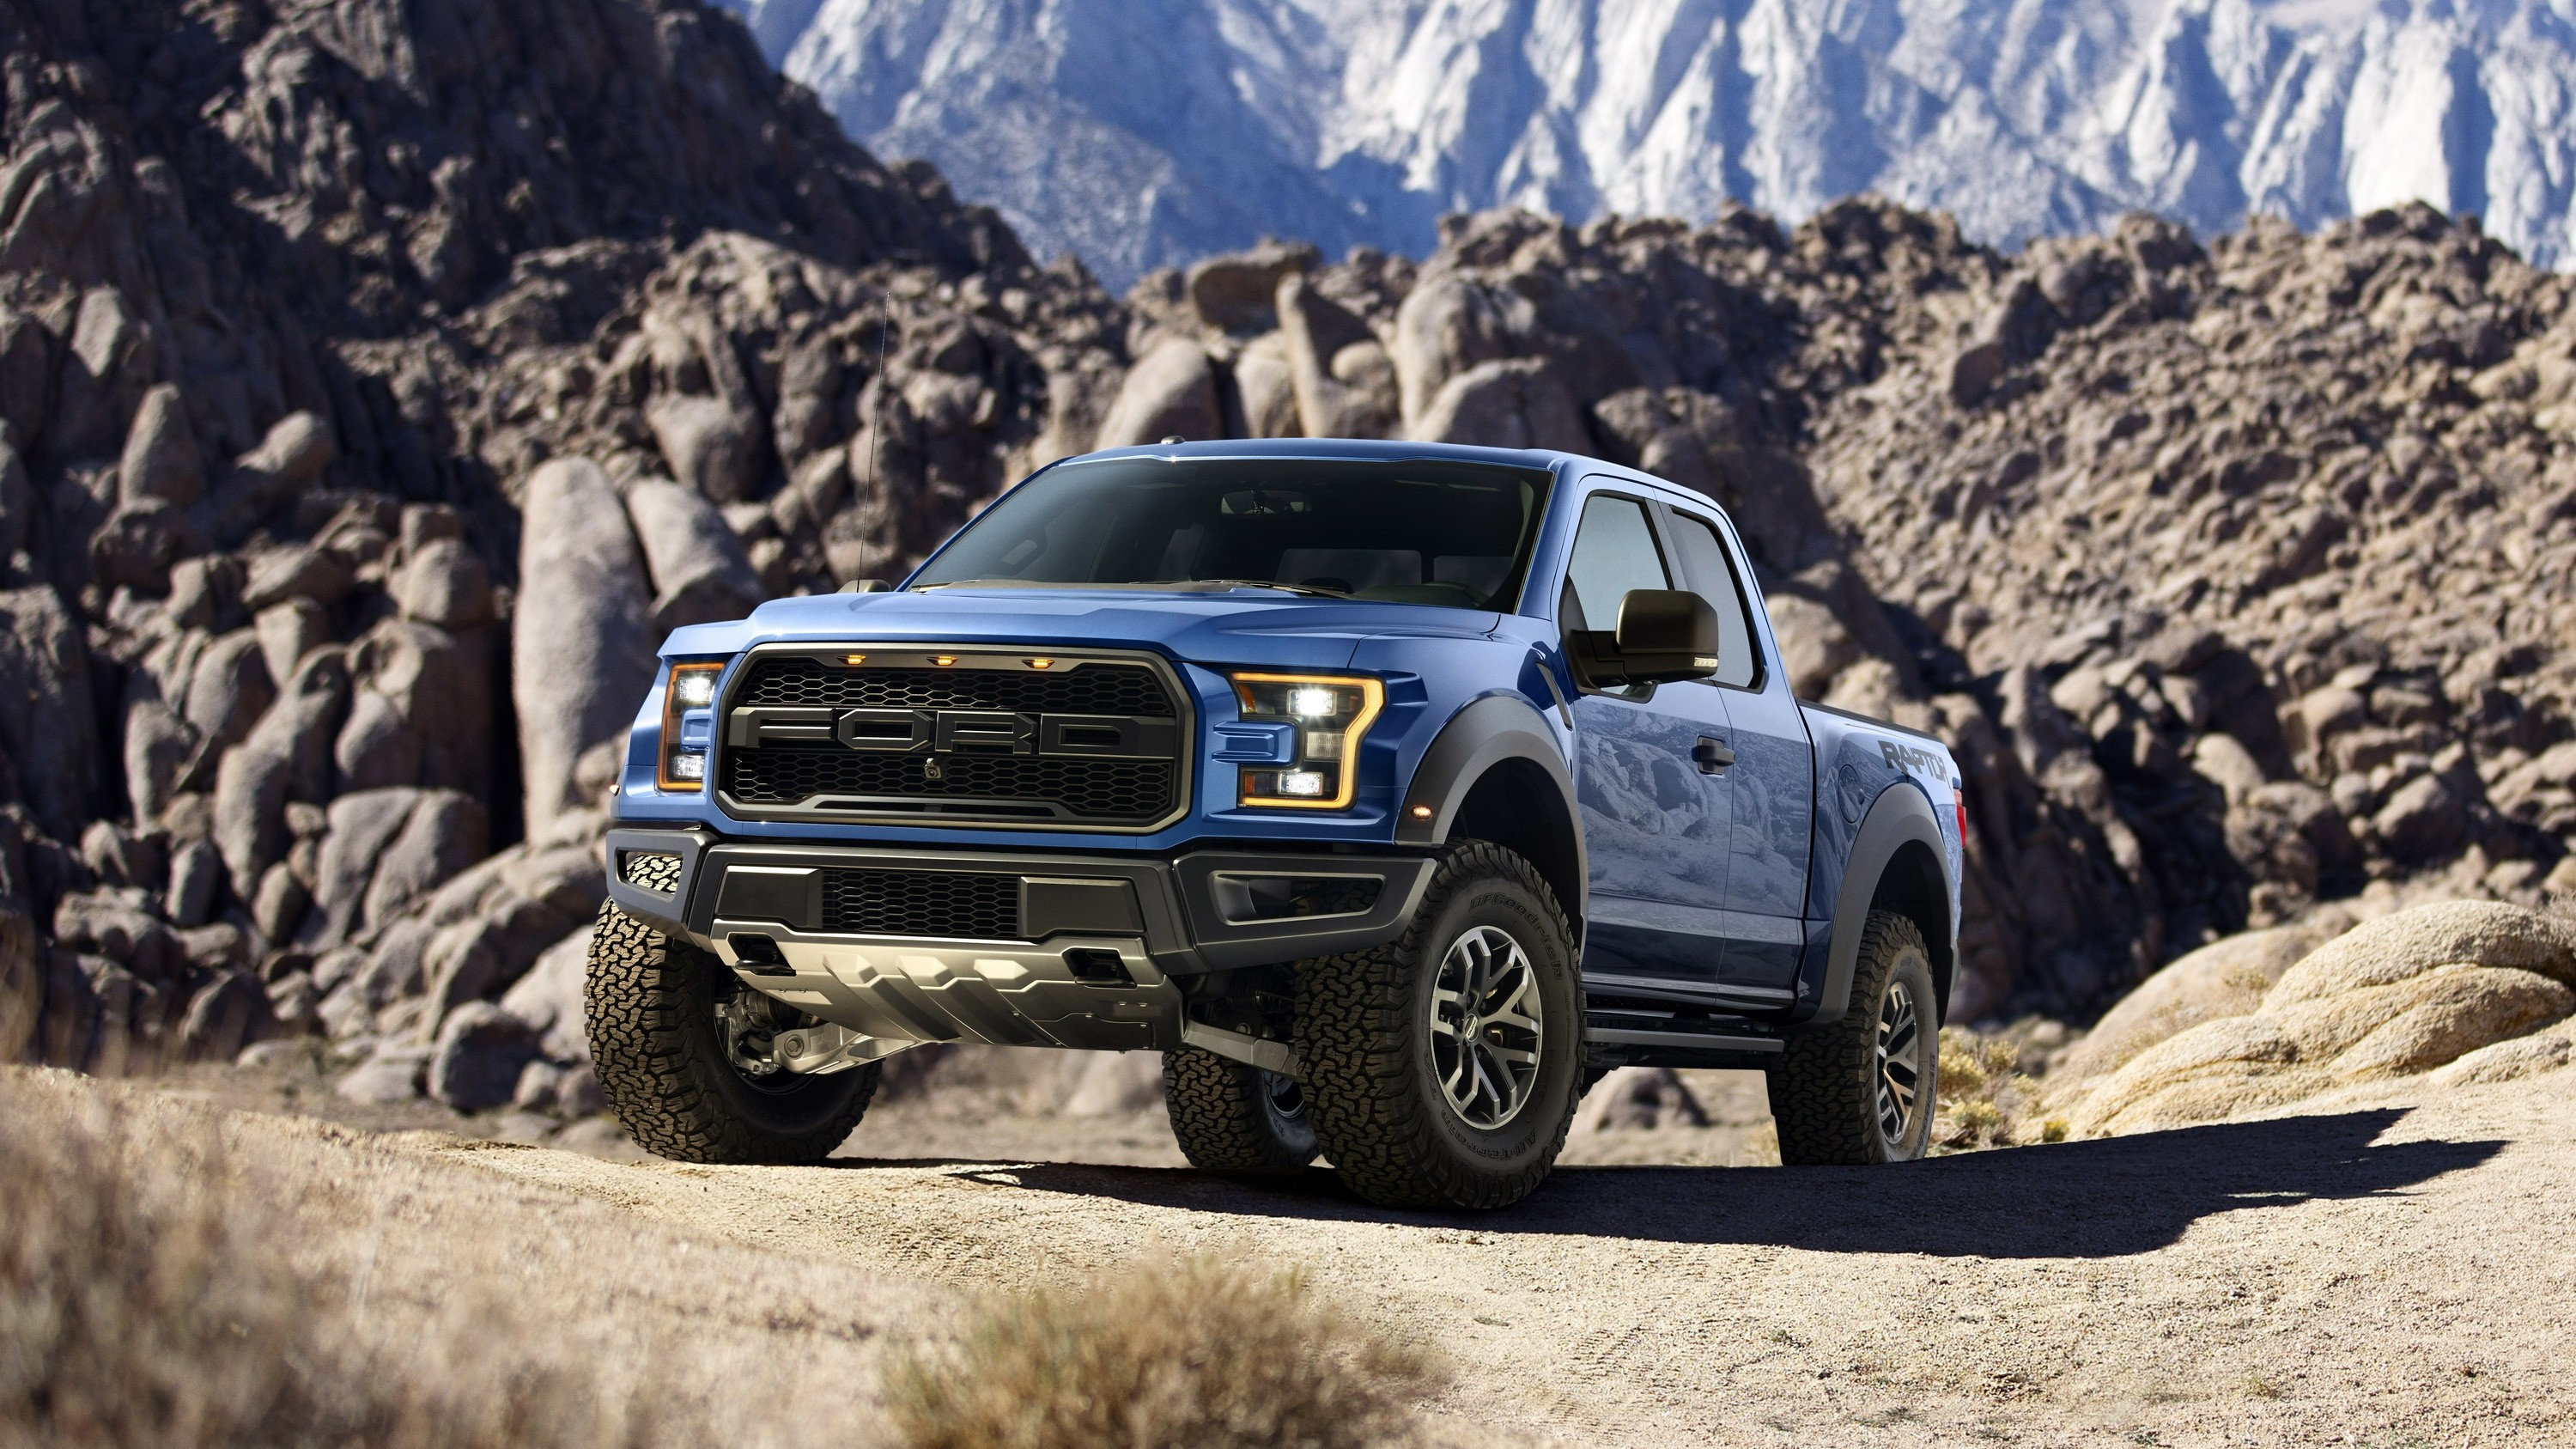 3000x1687 Wallpaper Of The Day: 2017 Ford F-150 Raptor | Top Speed. »